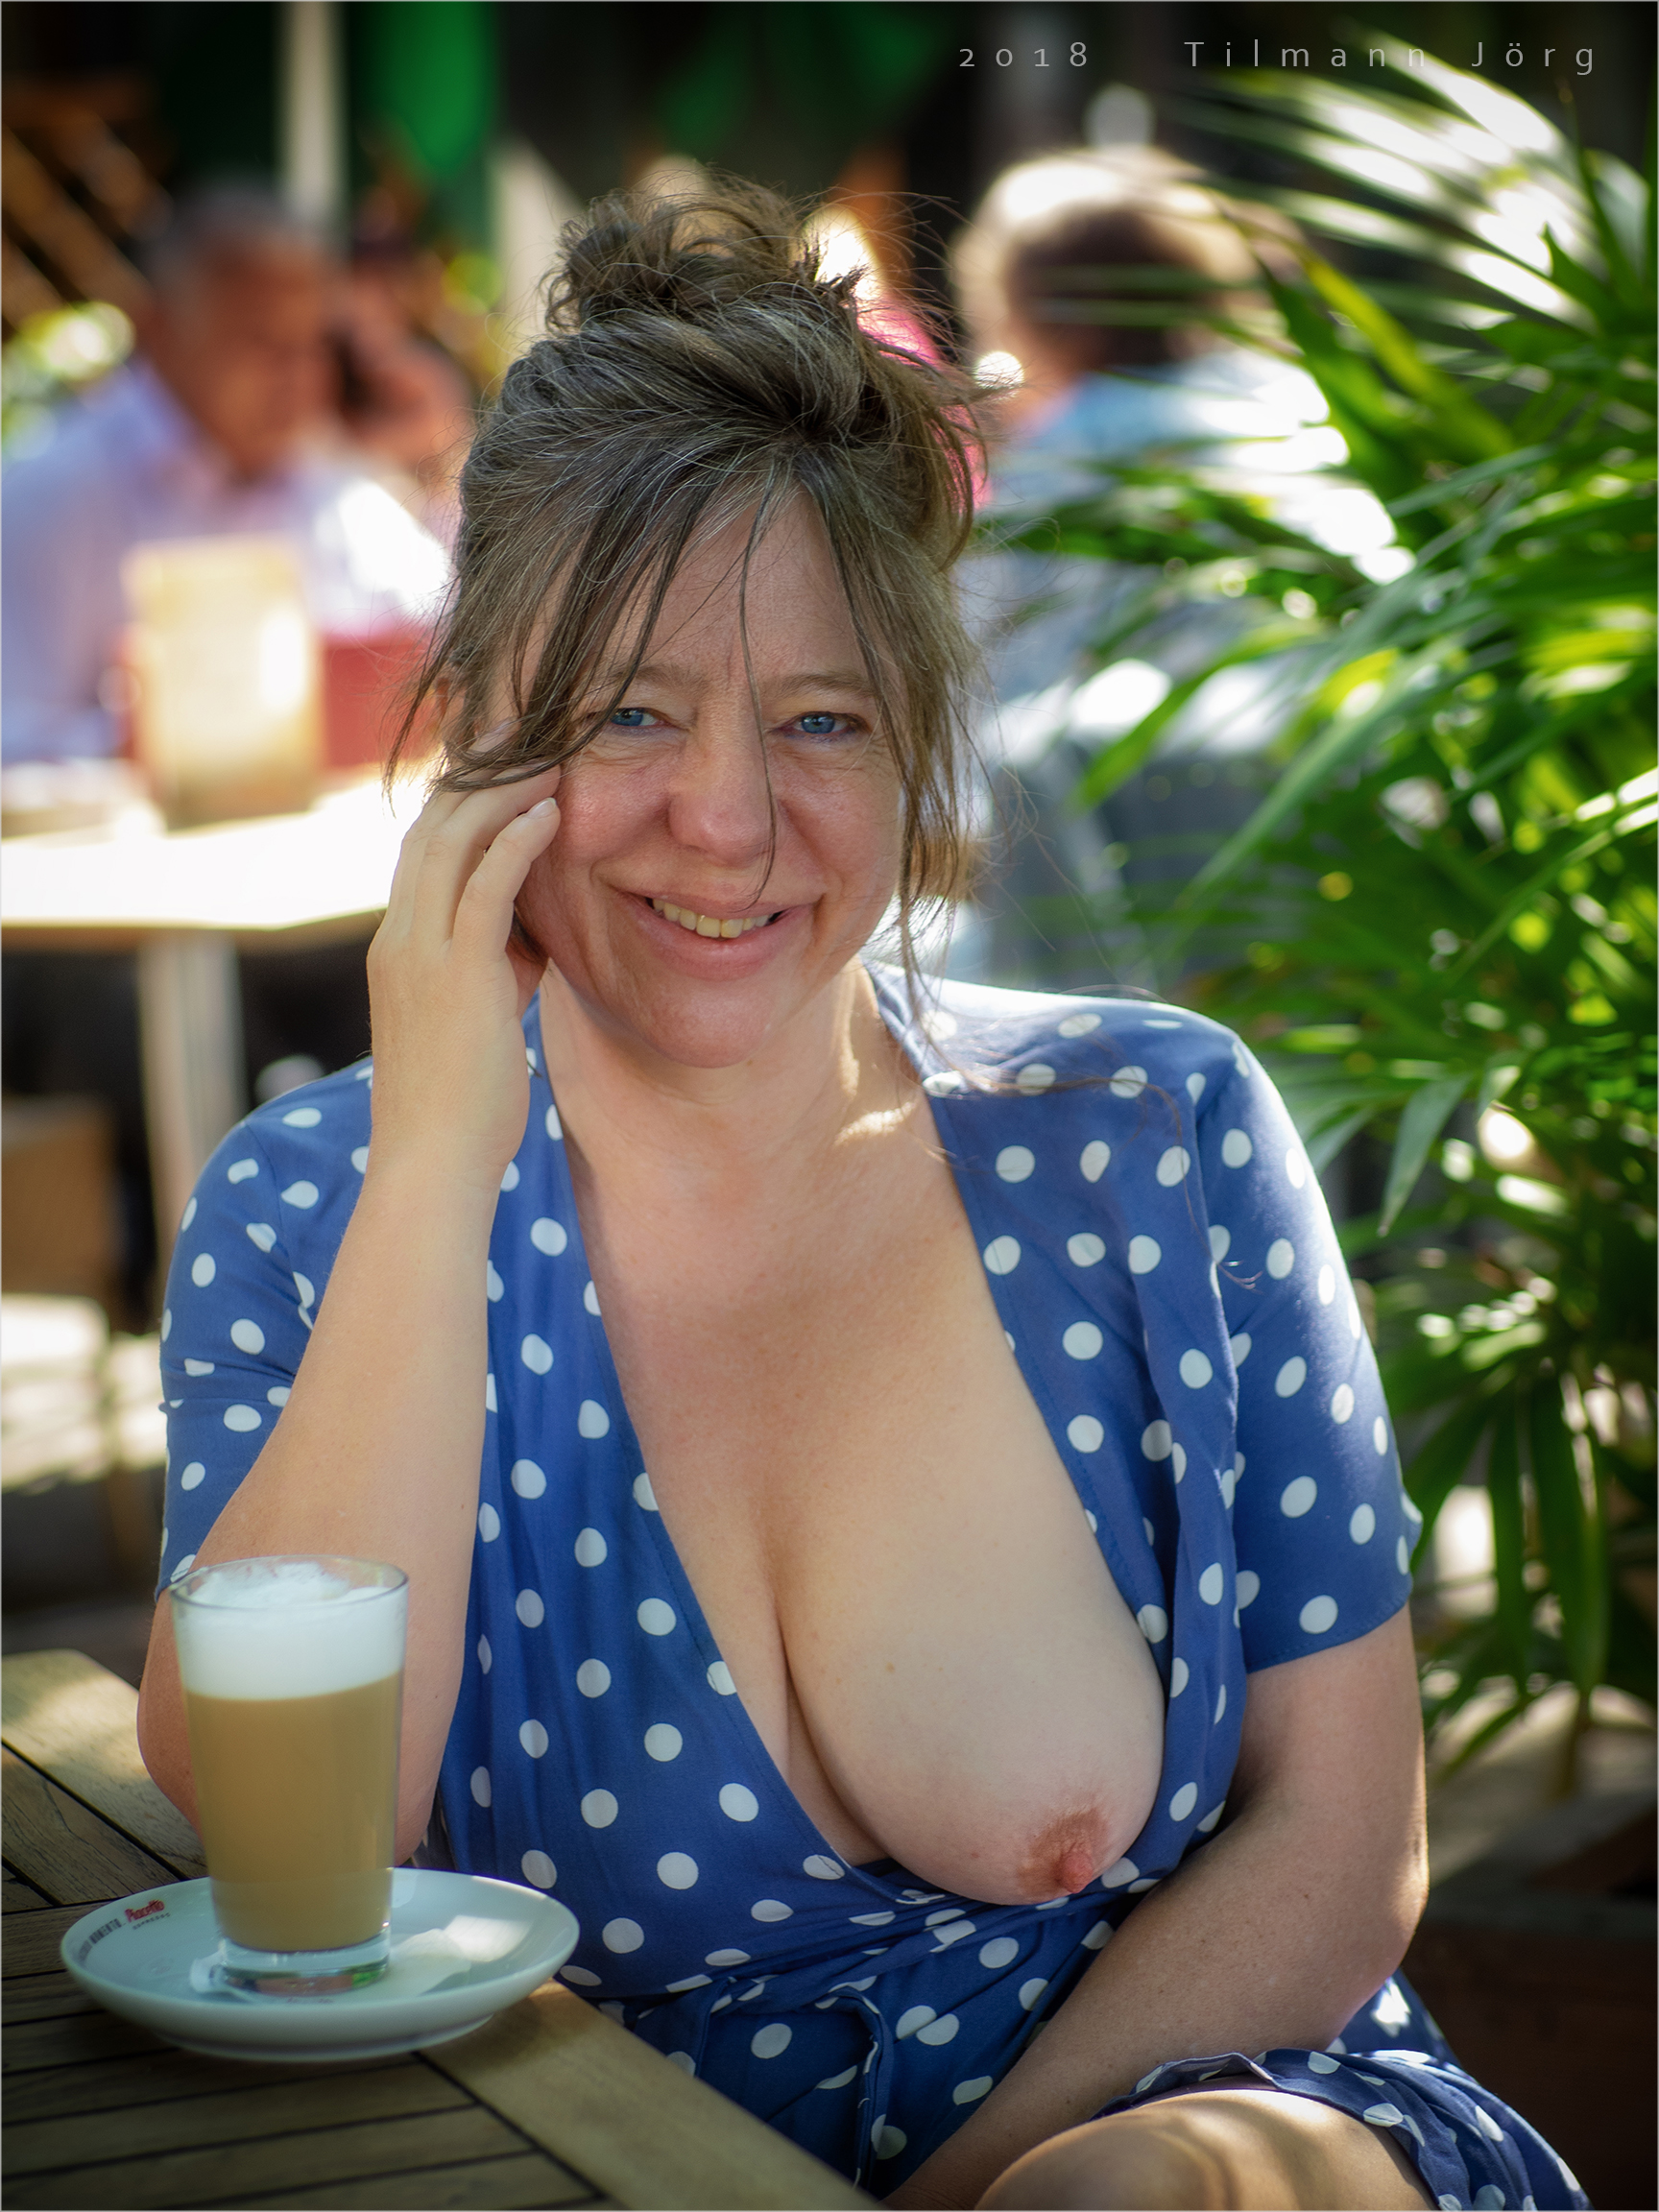 flashing in a Berlin Cafe